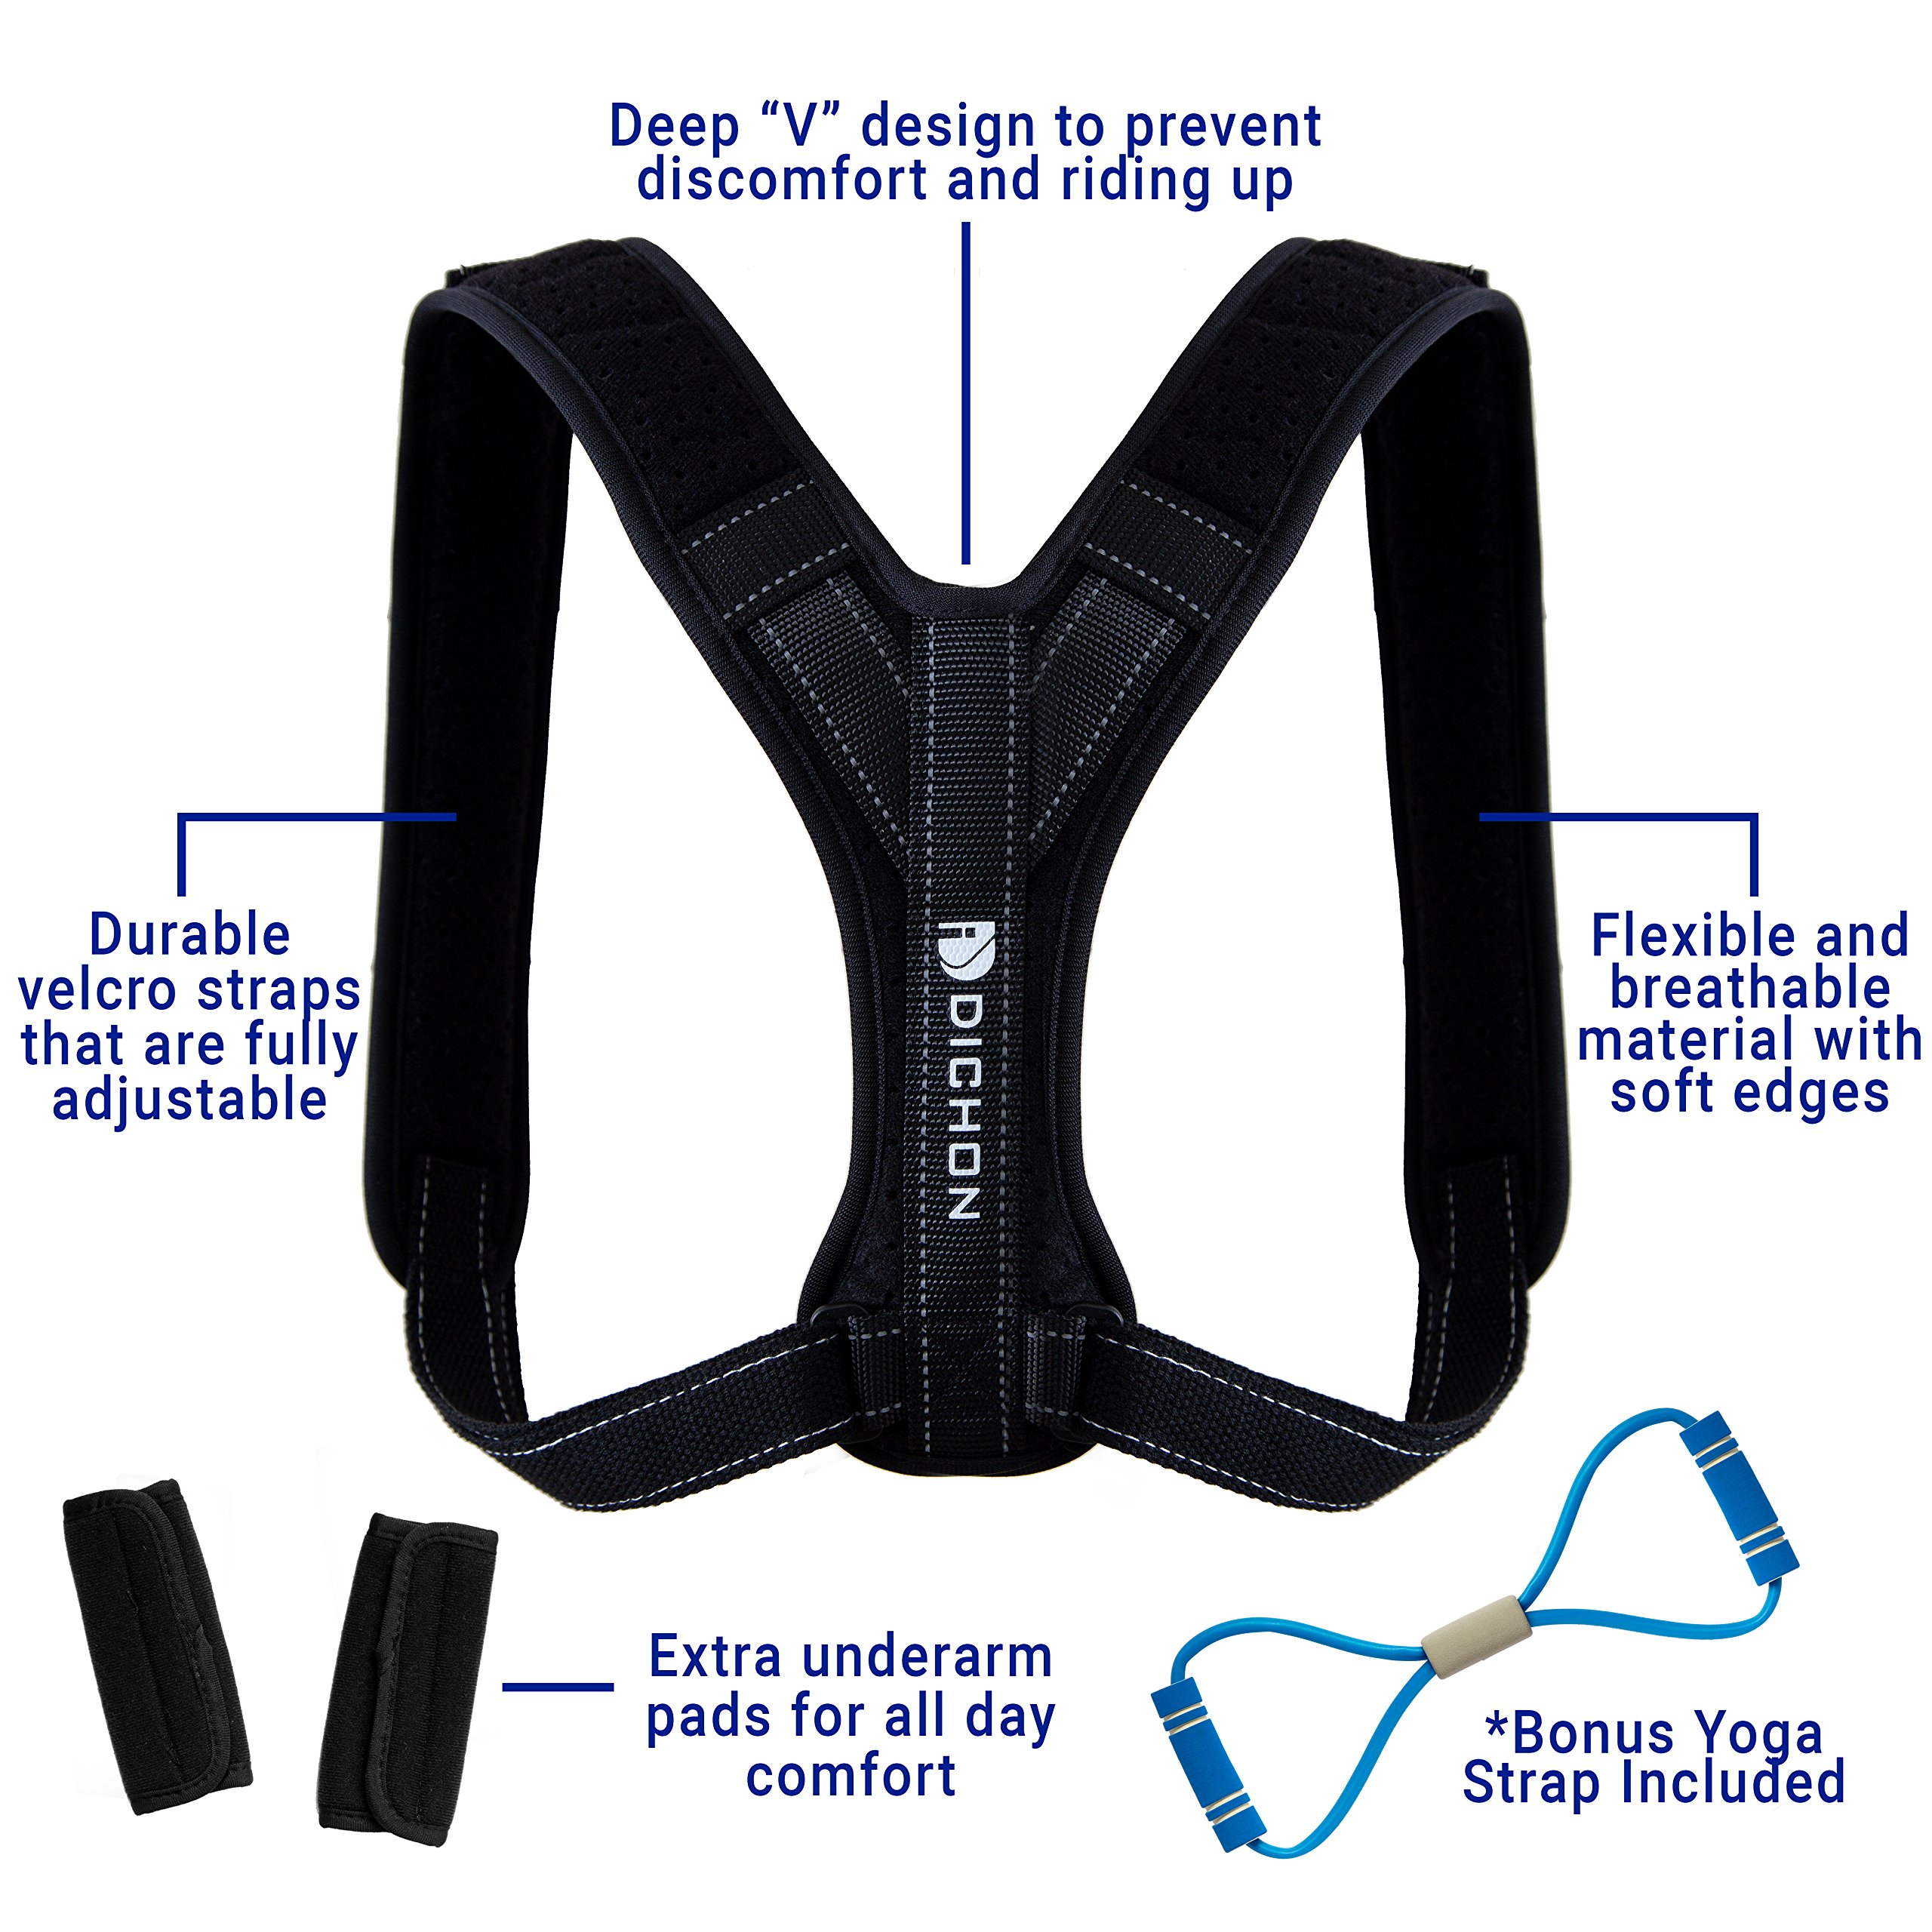 Dichon Innovations Posture Corrector Brace for Men and Women-Comfortable and Adjustable Clavicle Shoulder Support Complete with Underarm Pads and Yoga Strap, Discreet Design, Unisex Size by Dichon Innovations (Image #3)